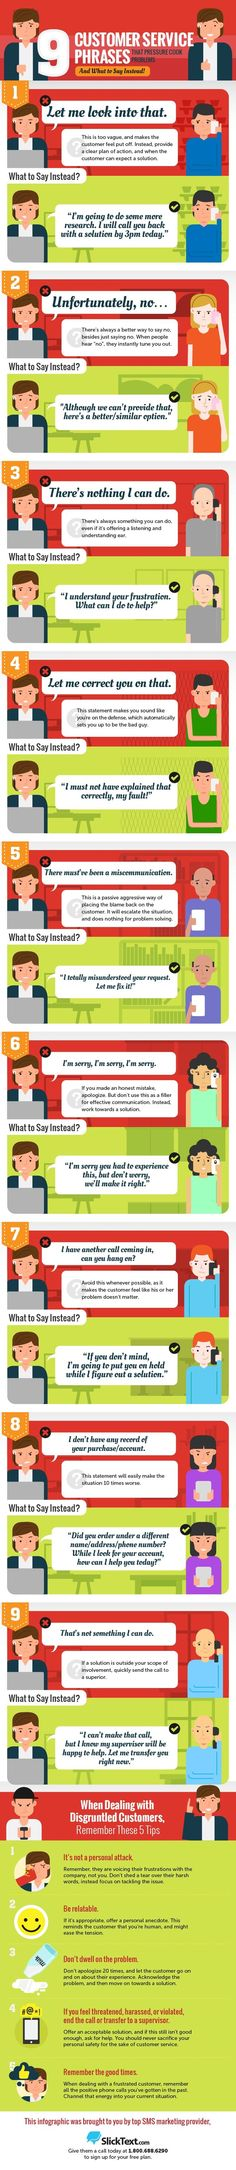 9 Deadly Customer Service Phrases to Avoid (& What to Say Instead) [Infographic]